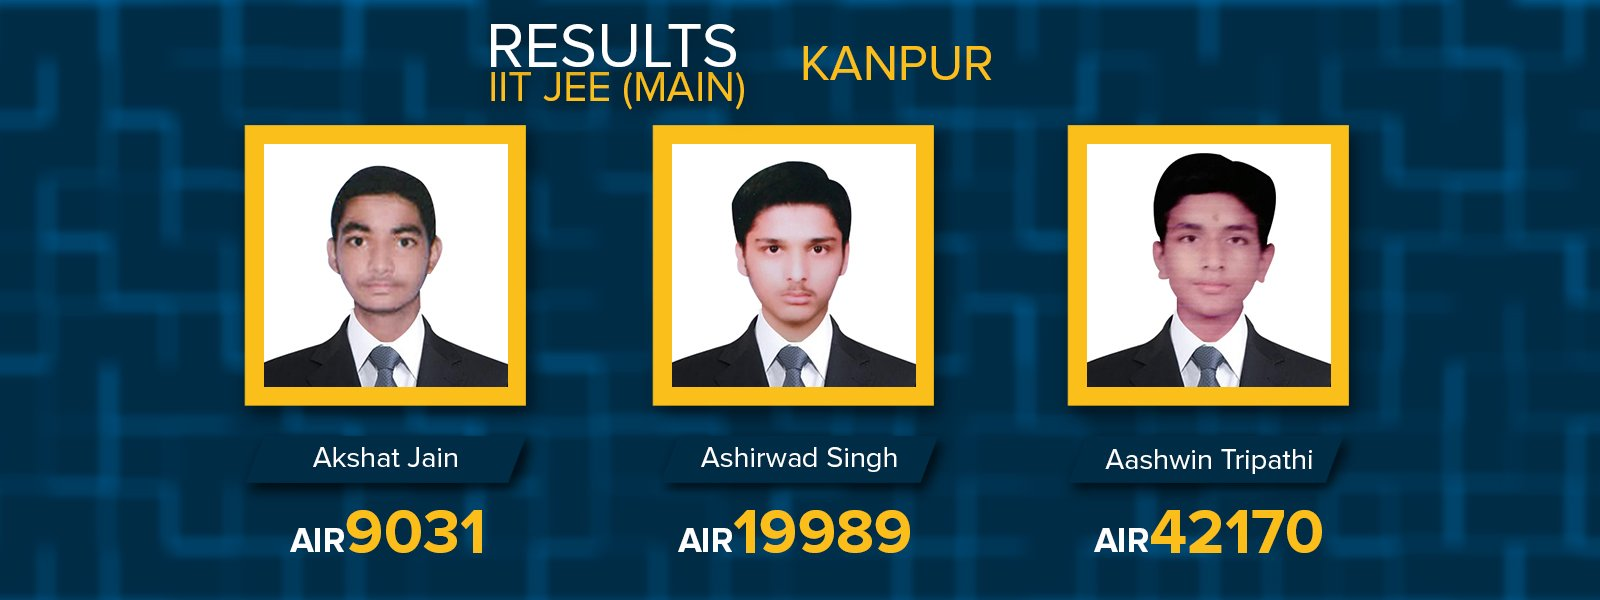 Kanpur IIT JEE MAIN 2017 results